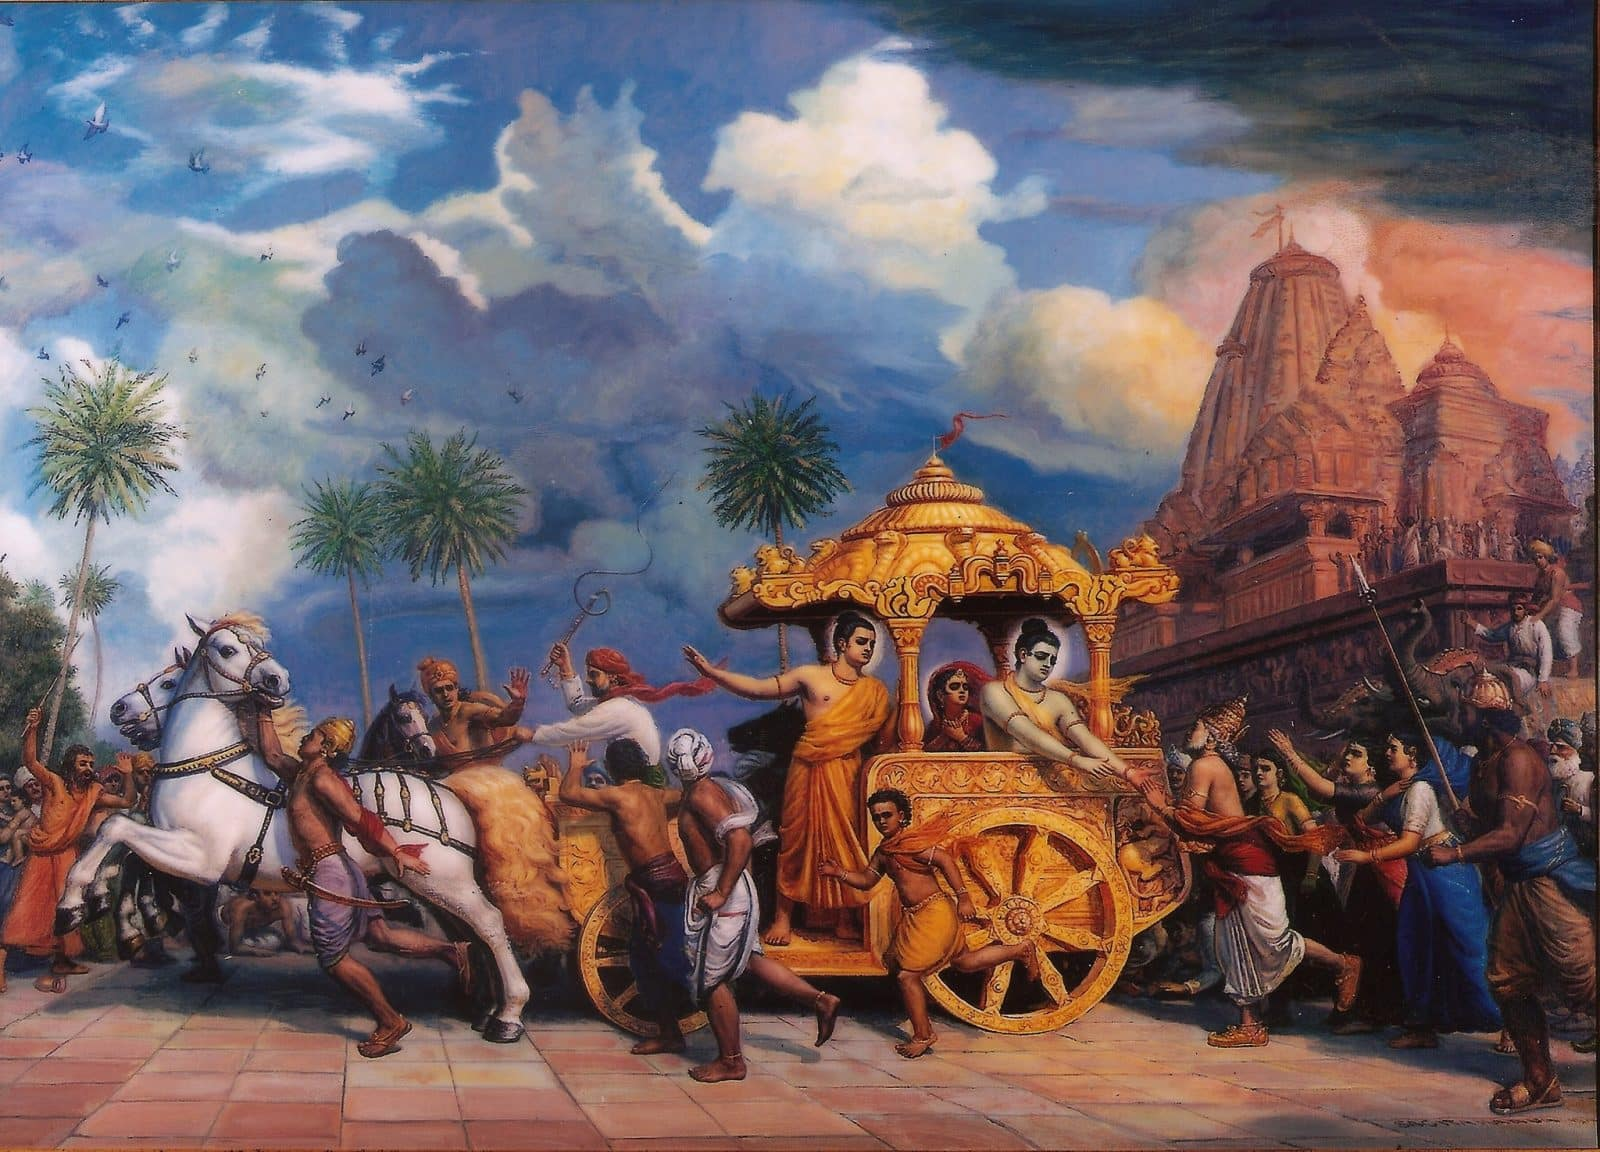 Lord Rama, Lakshmana and Sita leaving Ayodhya and the grief stricken King Dasarath following behind.